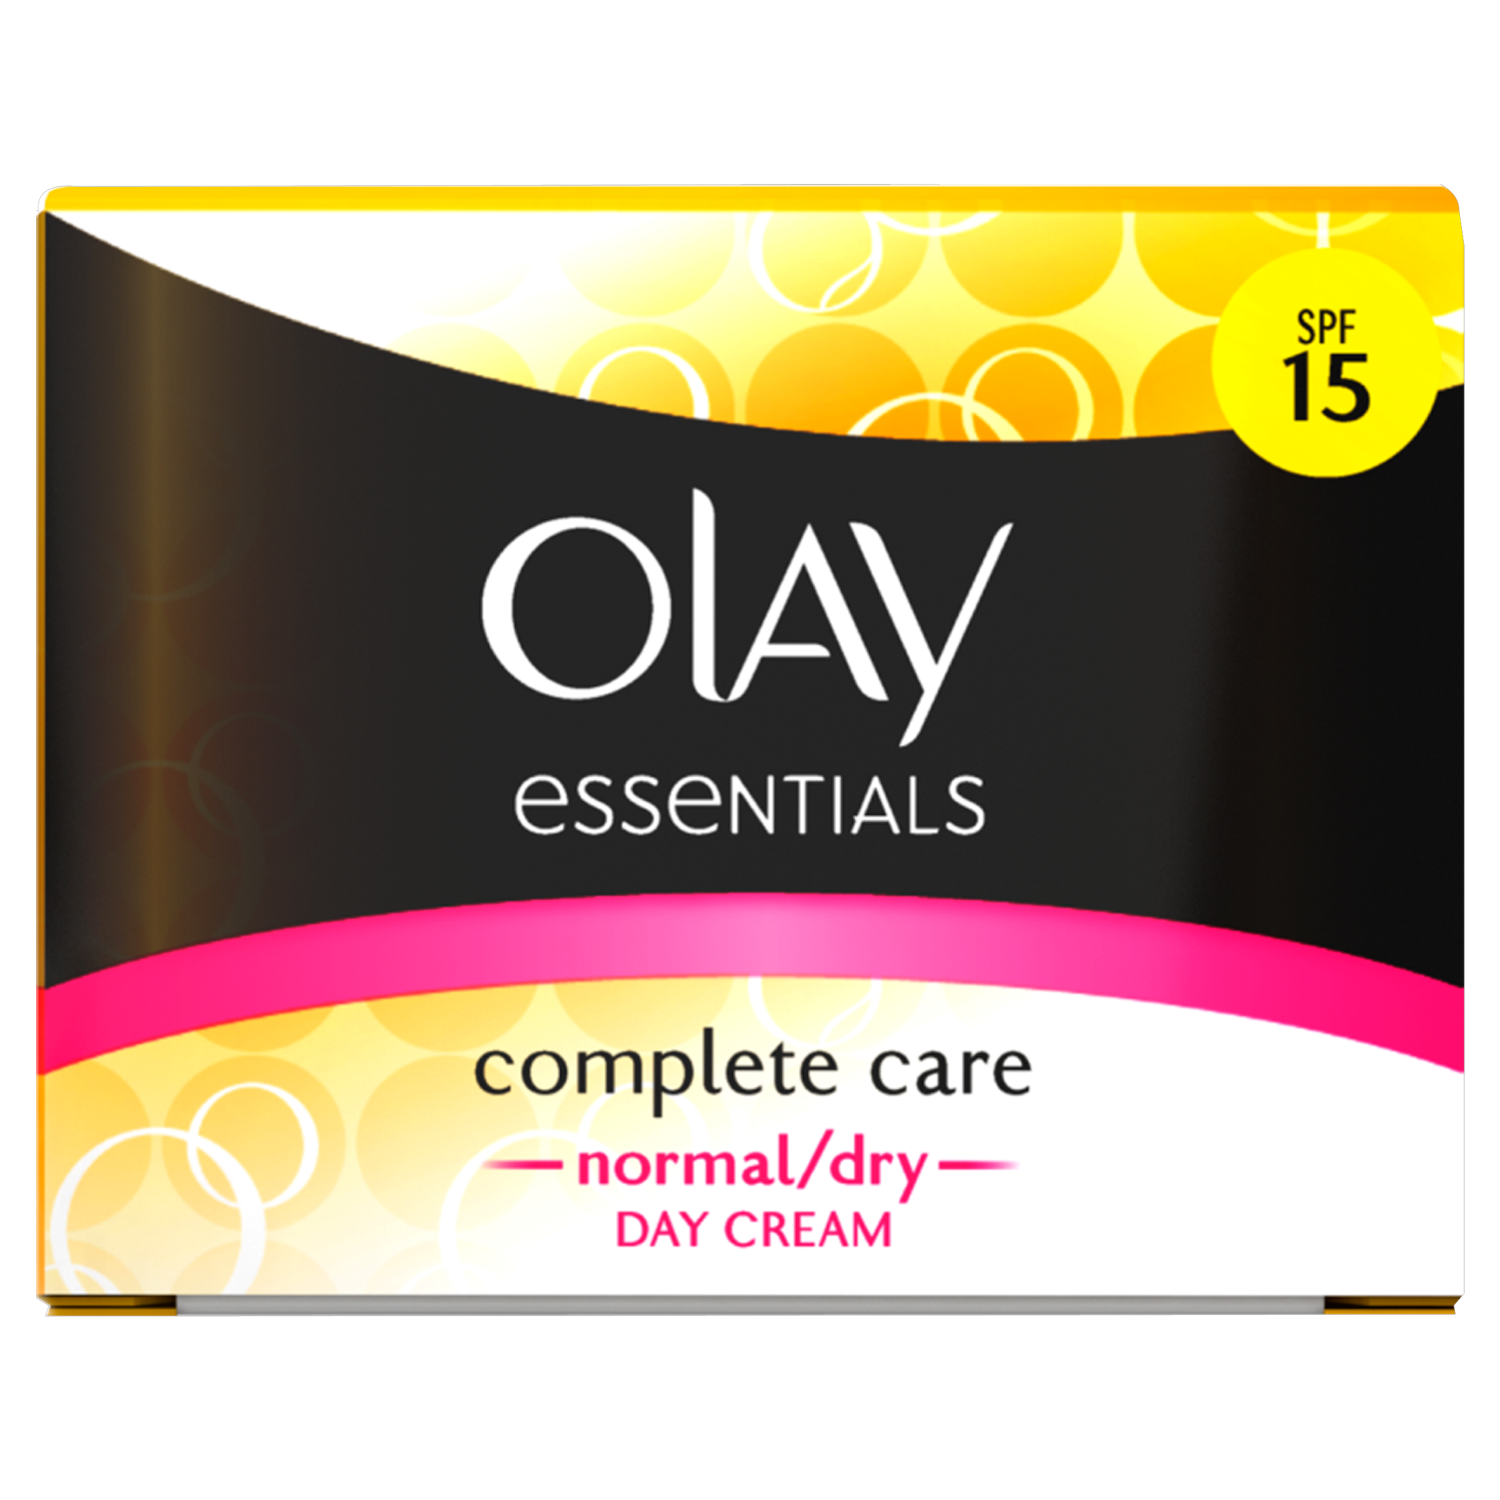 Olay Essentials Complete Care Day Cream